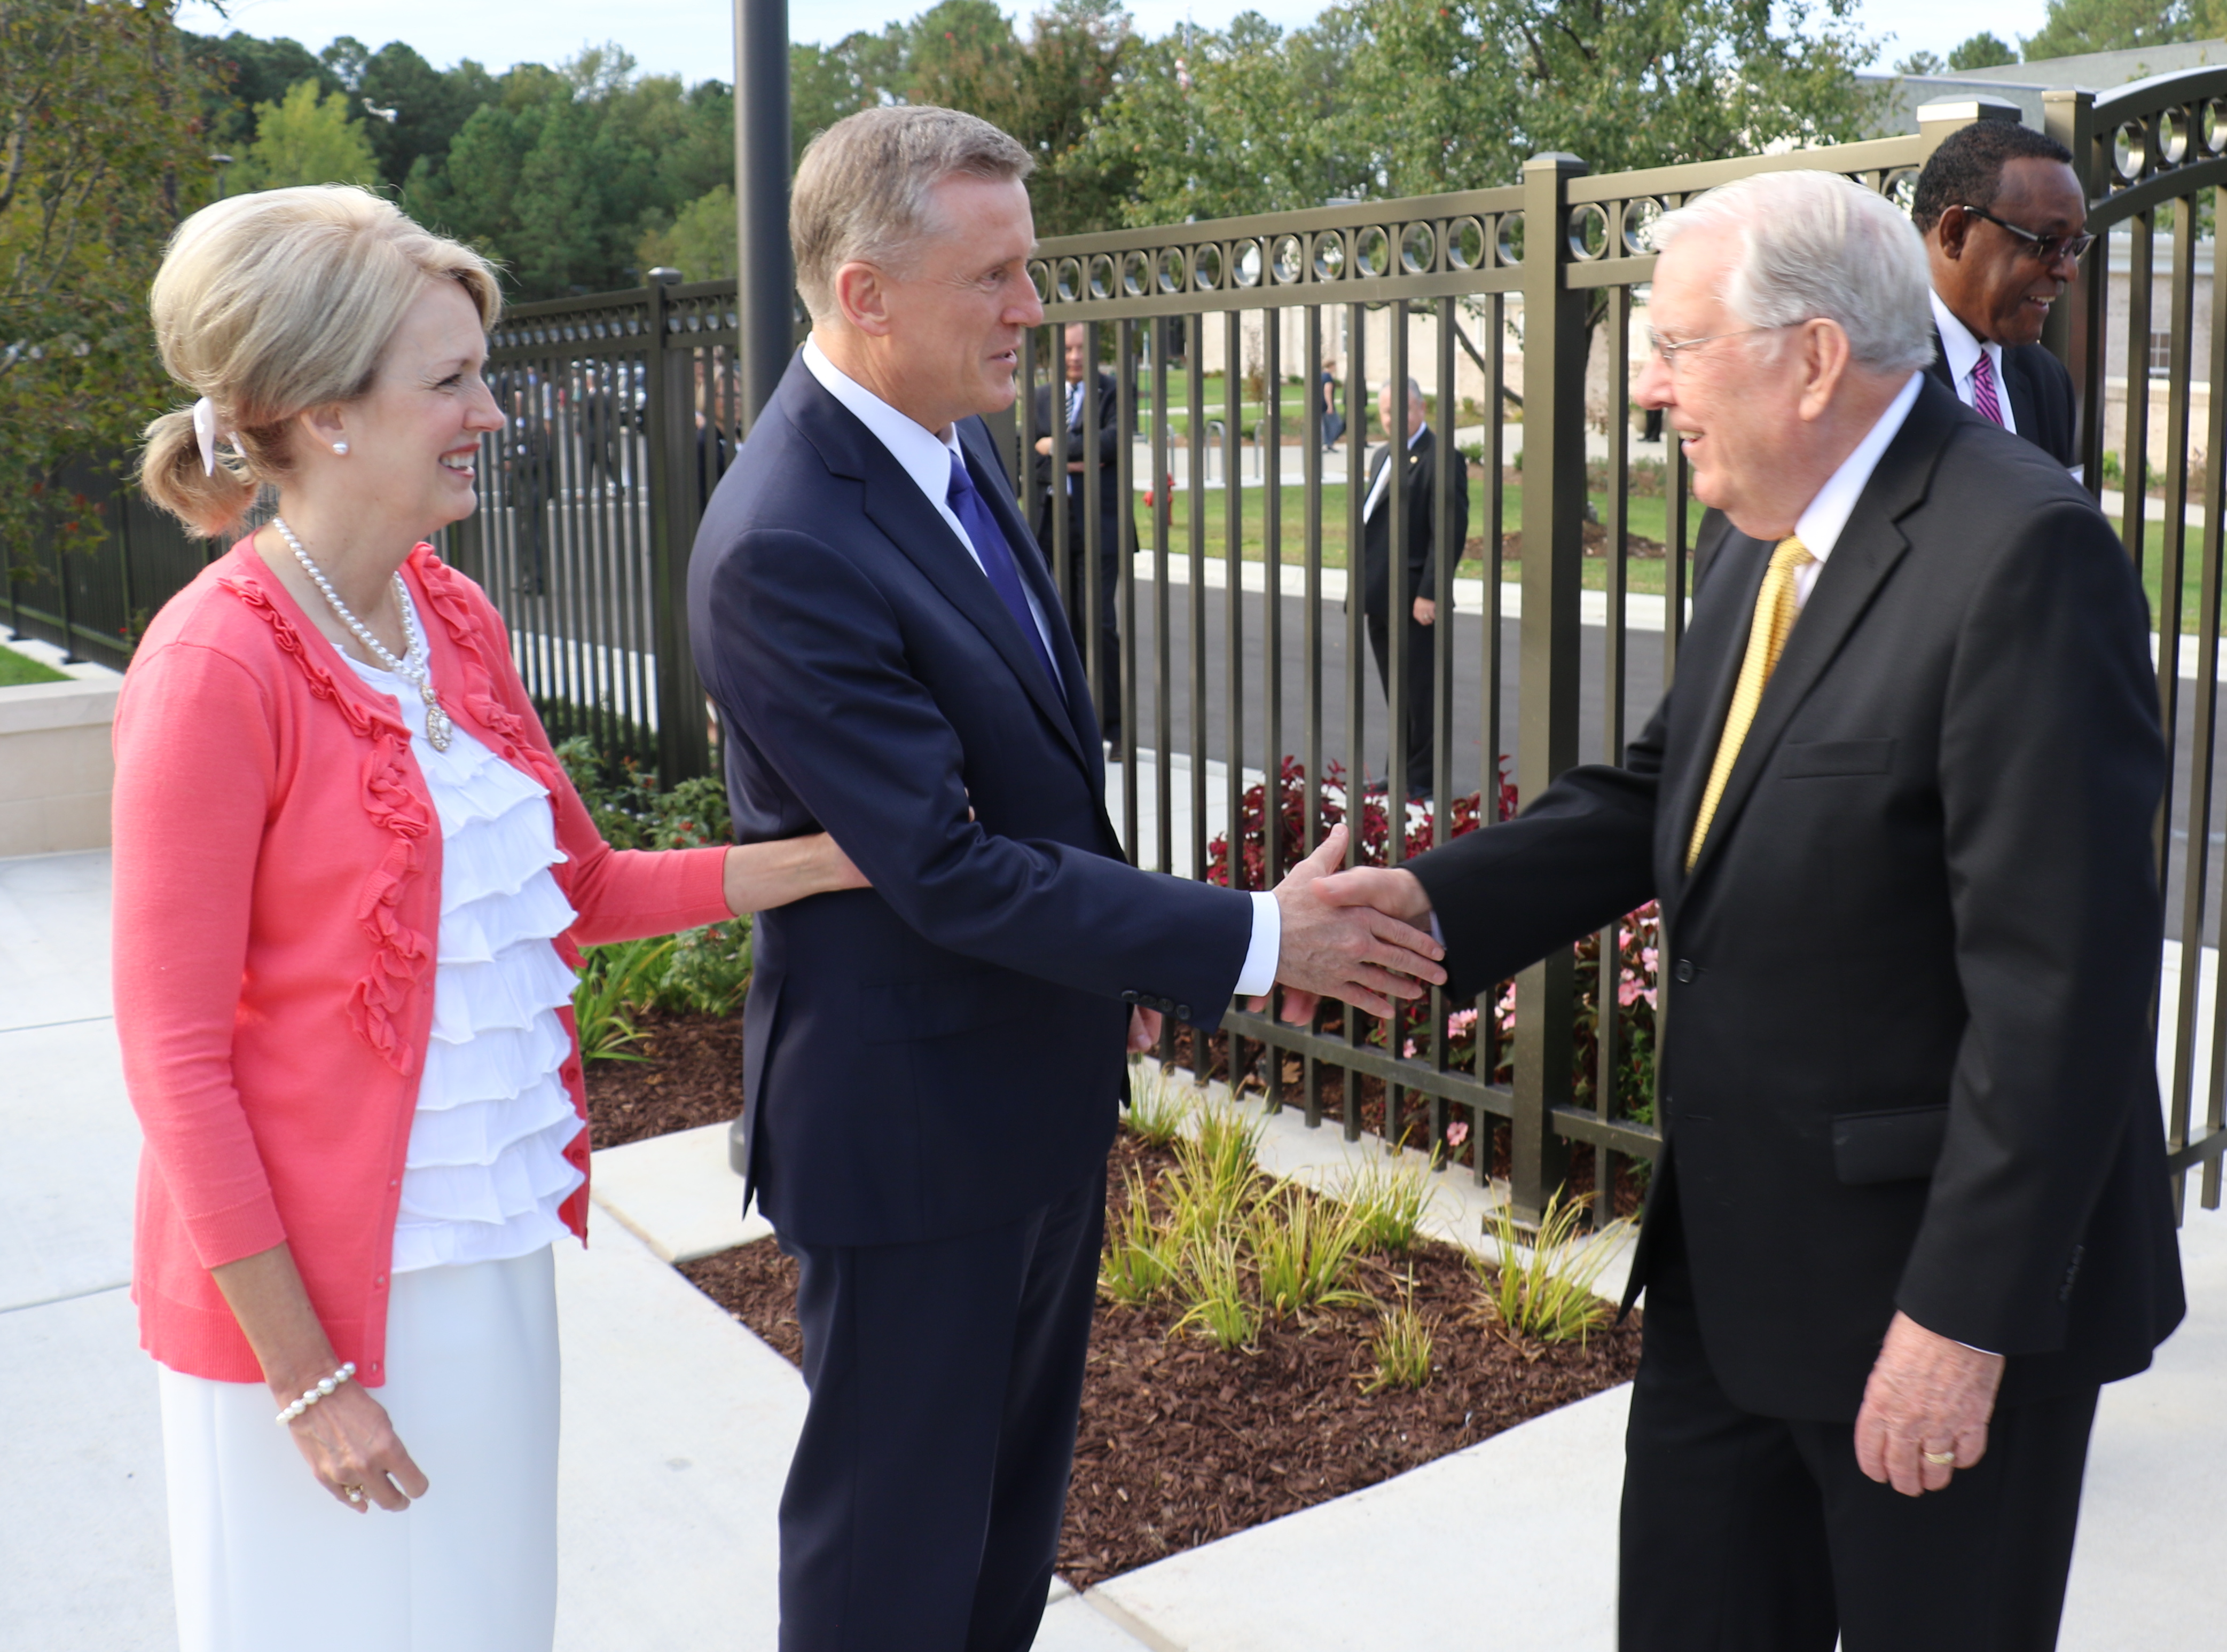 Elder Kevin R. Duncan and his wife, Sister Nancy Duncan, welcome President M. Russell Ballard to the Raleigh North Carolina Temple on Oct. 13, 2019.